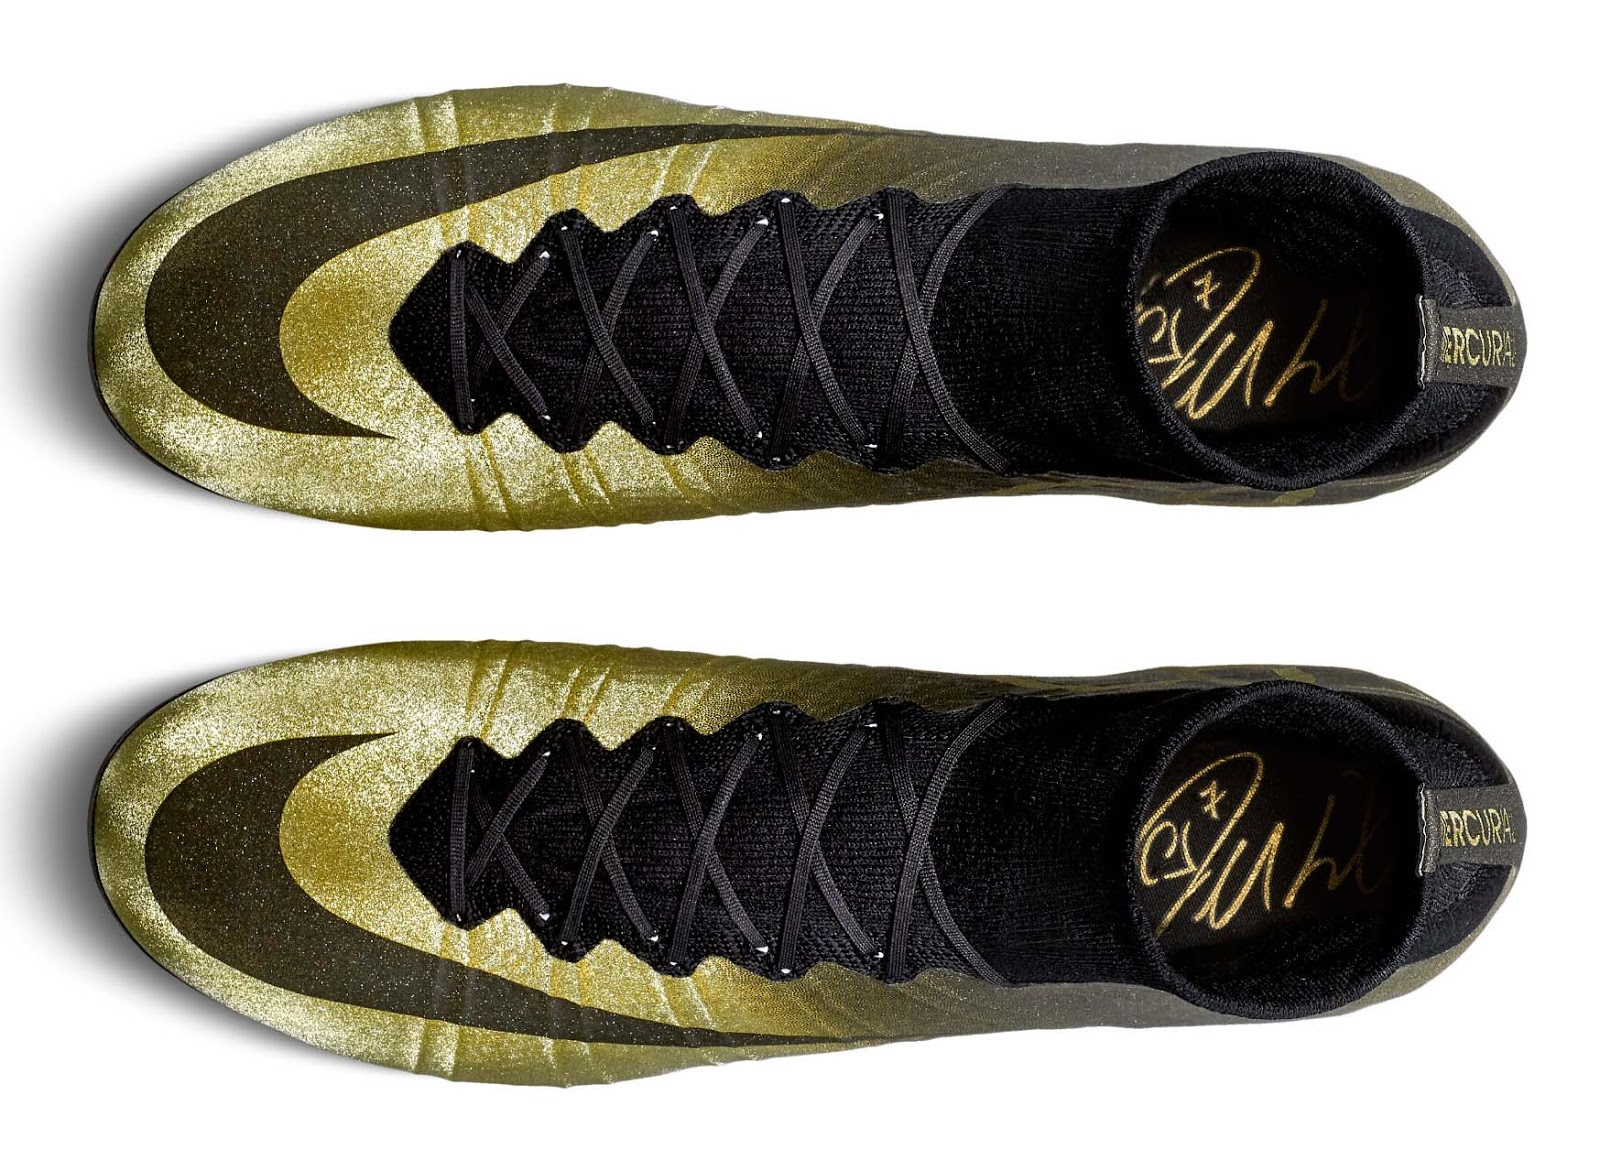 Cr7 cleats gold